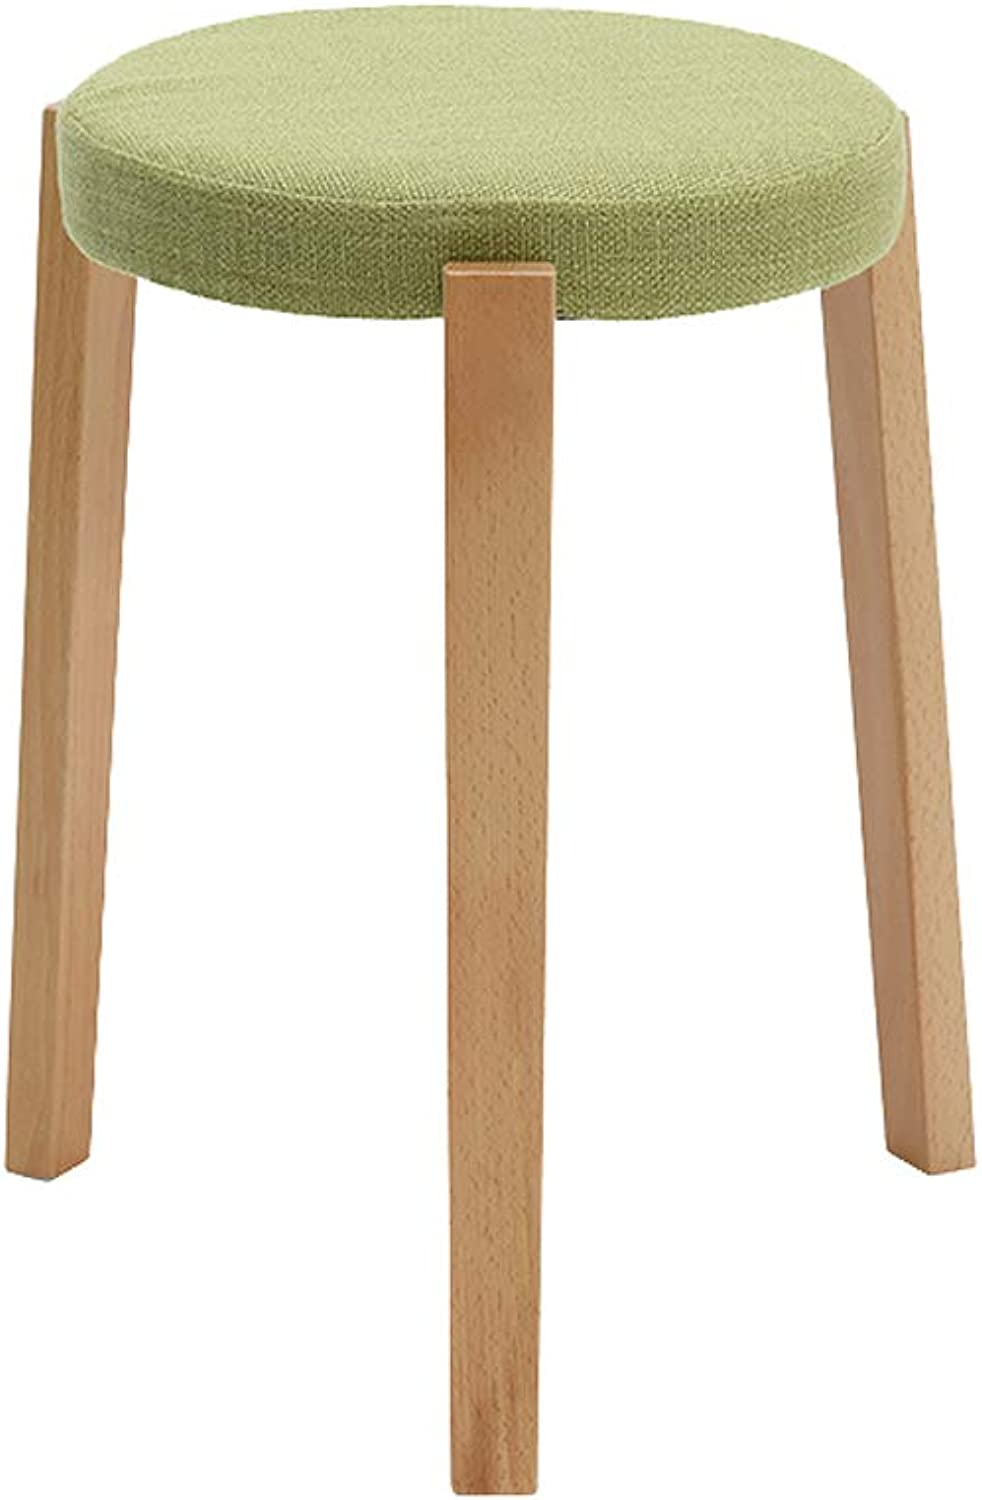 Table Stool, Solid Wood Sofa Footstools Bedroom Flax Matcha Green Dining Desk Dressing Bench Change shoes Stool (color   B)